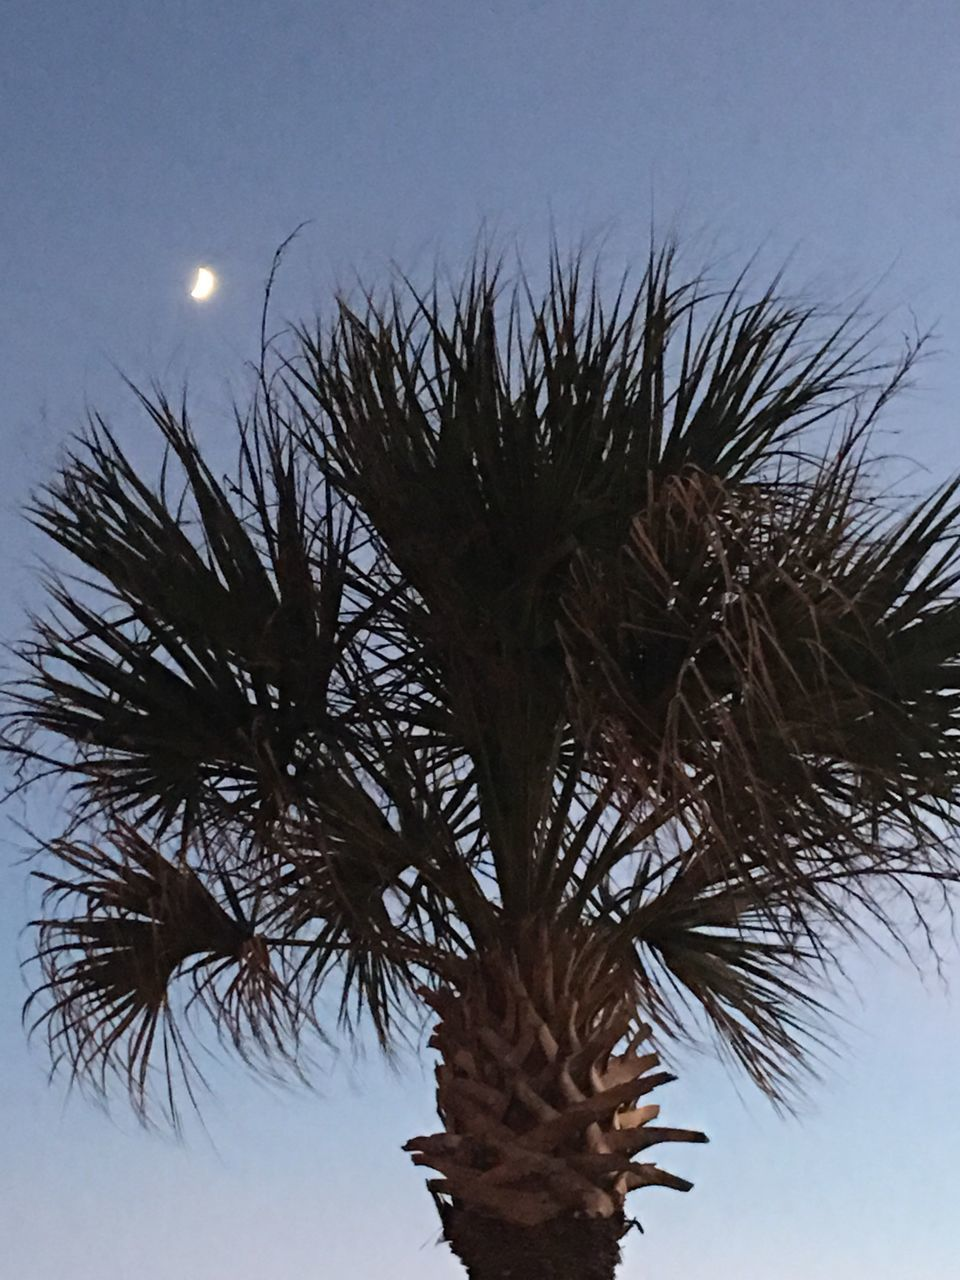 low angle view, growth, palm tree, tree, no people, outdoors, sky, nature, clear sky, day, moon, beauty in nature, close-up